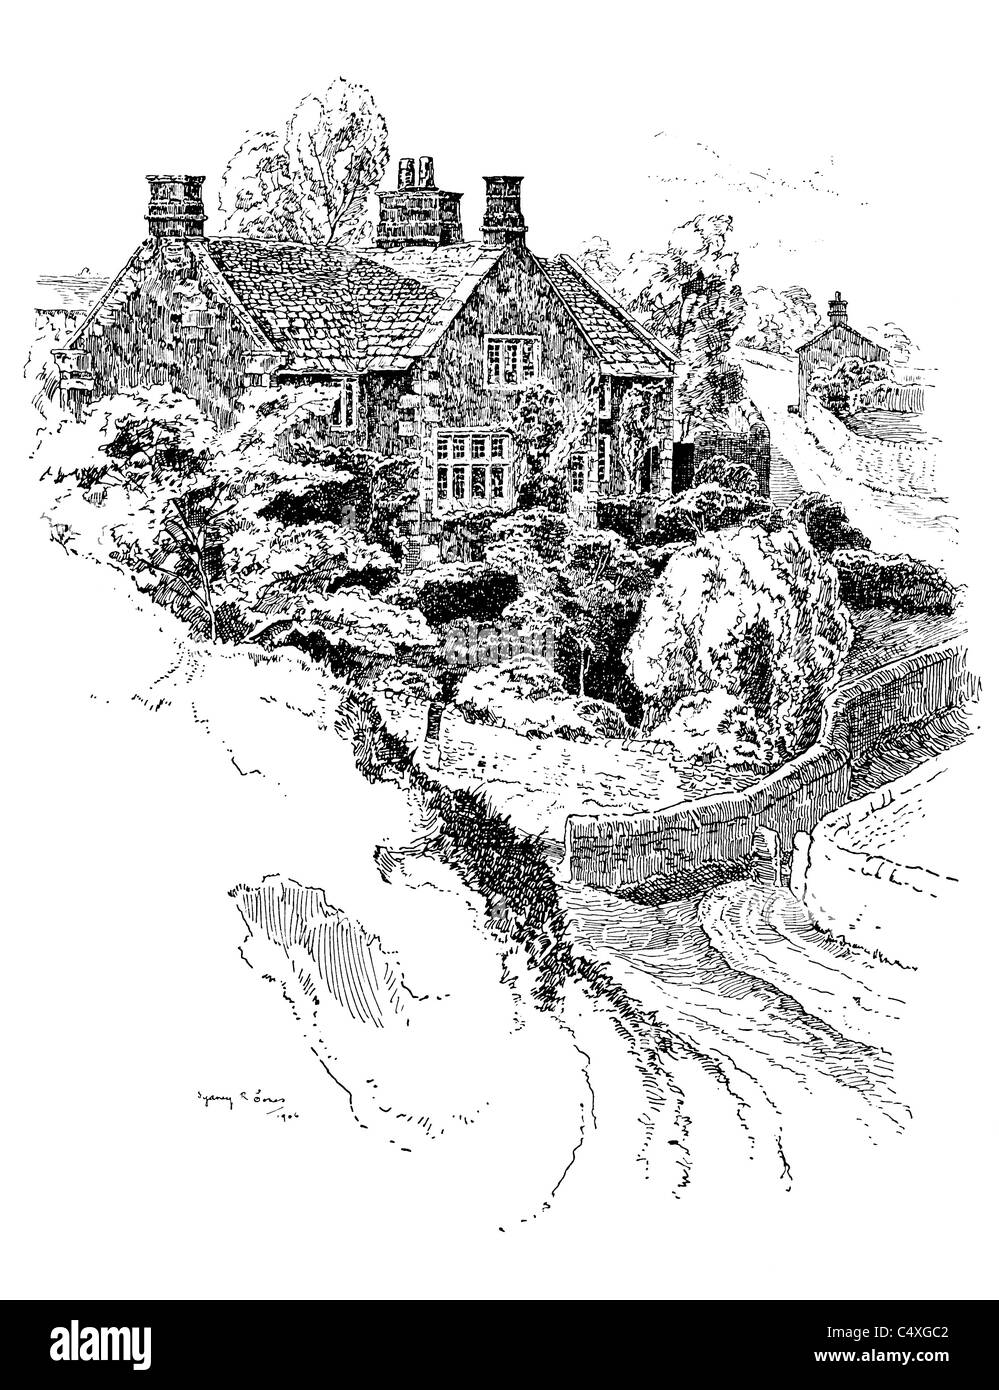 Alport, Derbyshire - pen and ink illustration from 'Old English Country Cottages' by Charles Holme, 1906. - Stock Image